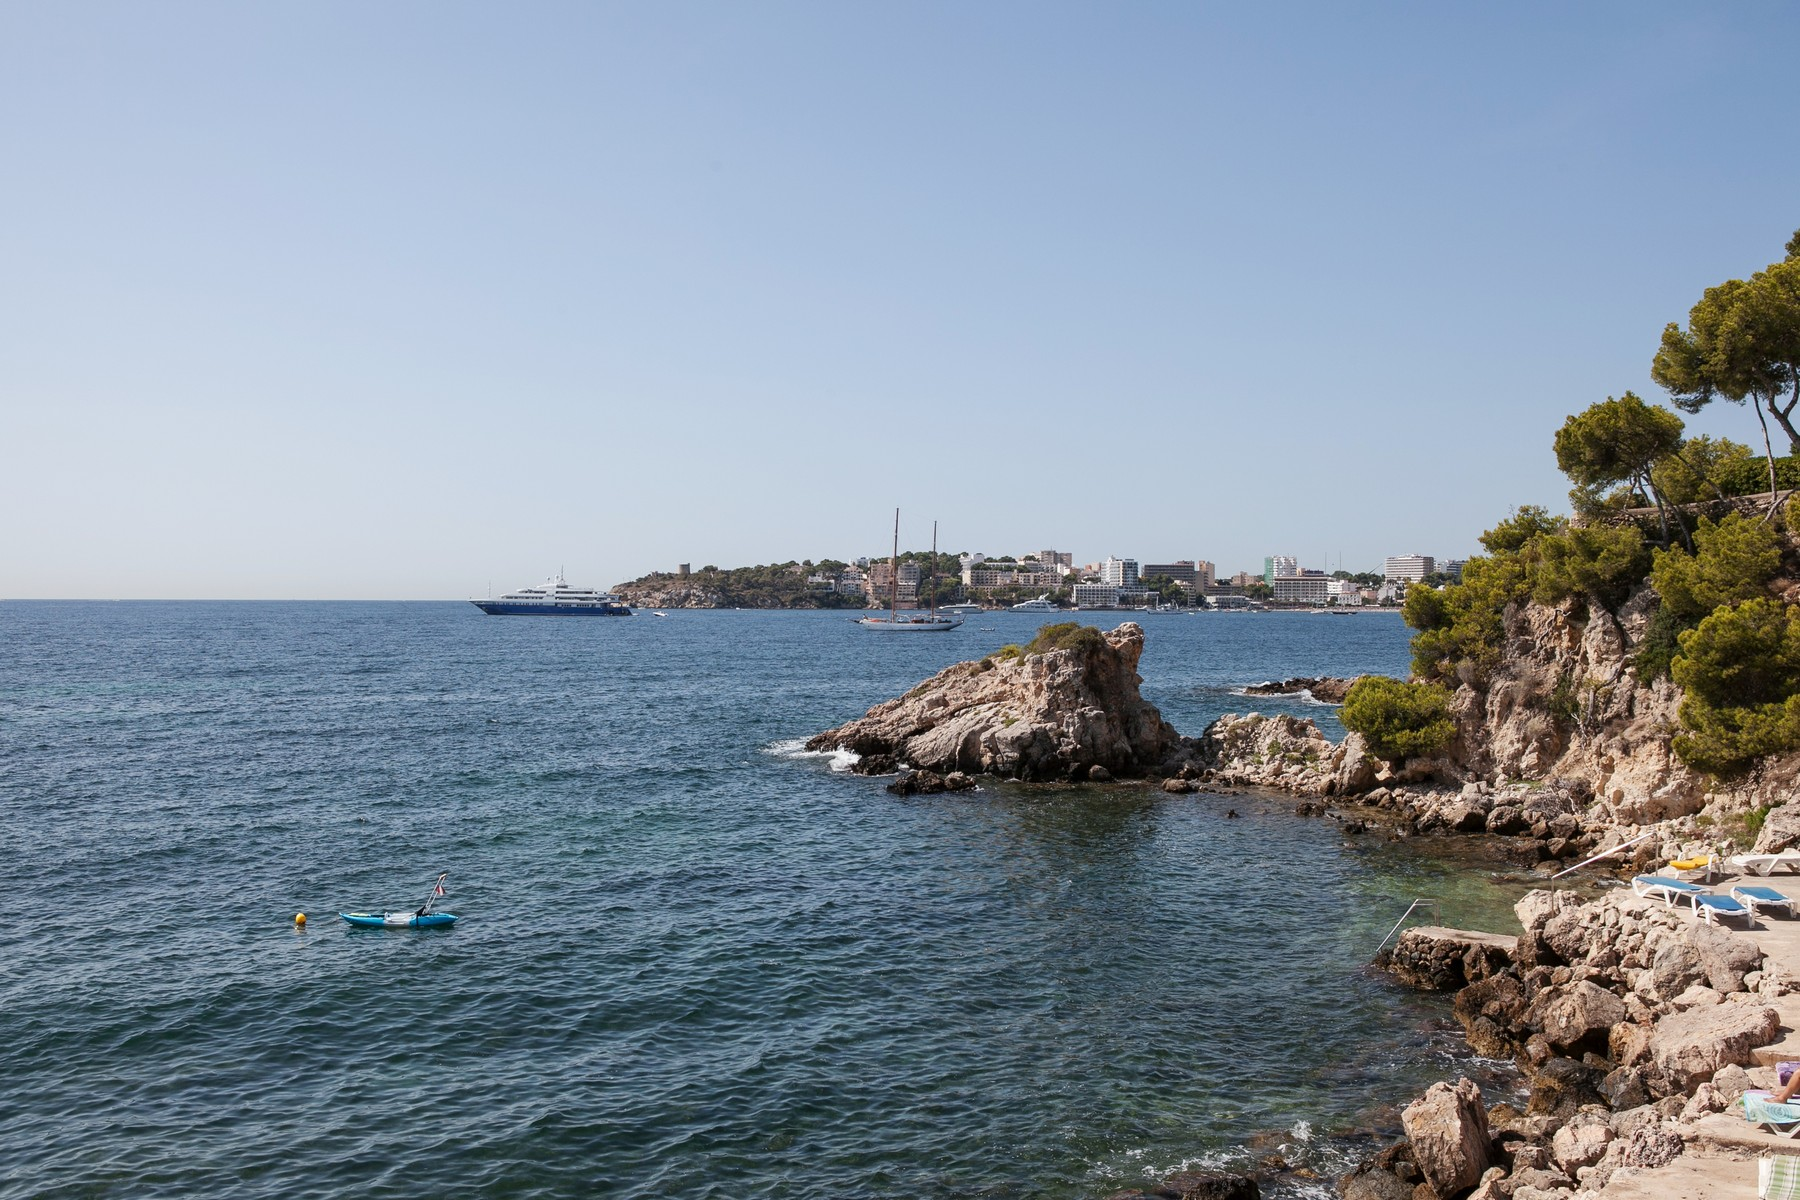 Single Family Home for Sale at Seafront property with 3 sea accesses in Calviá Calvia, Mallorca, 07181 Spain